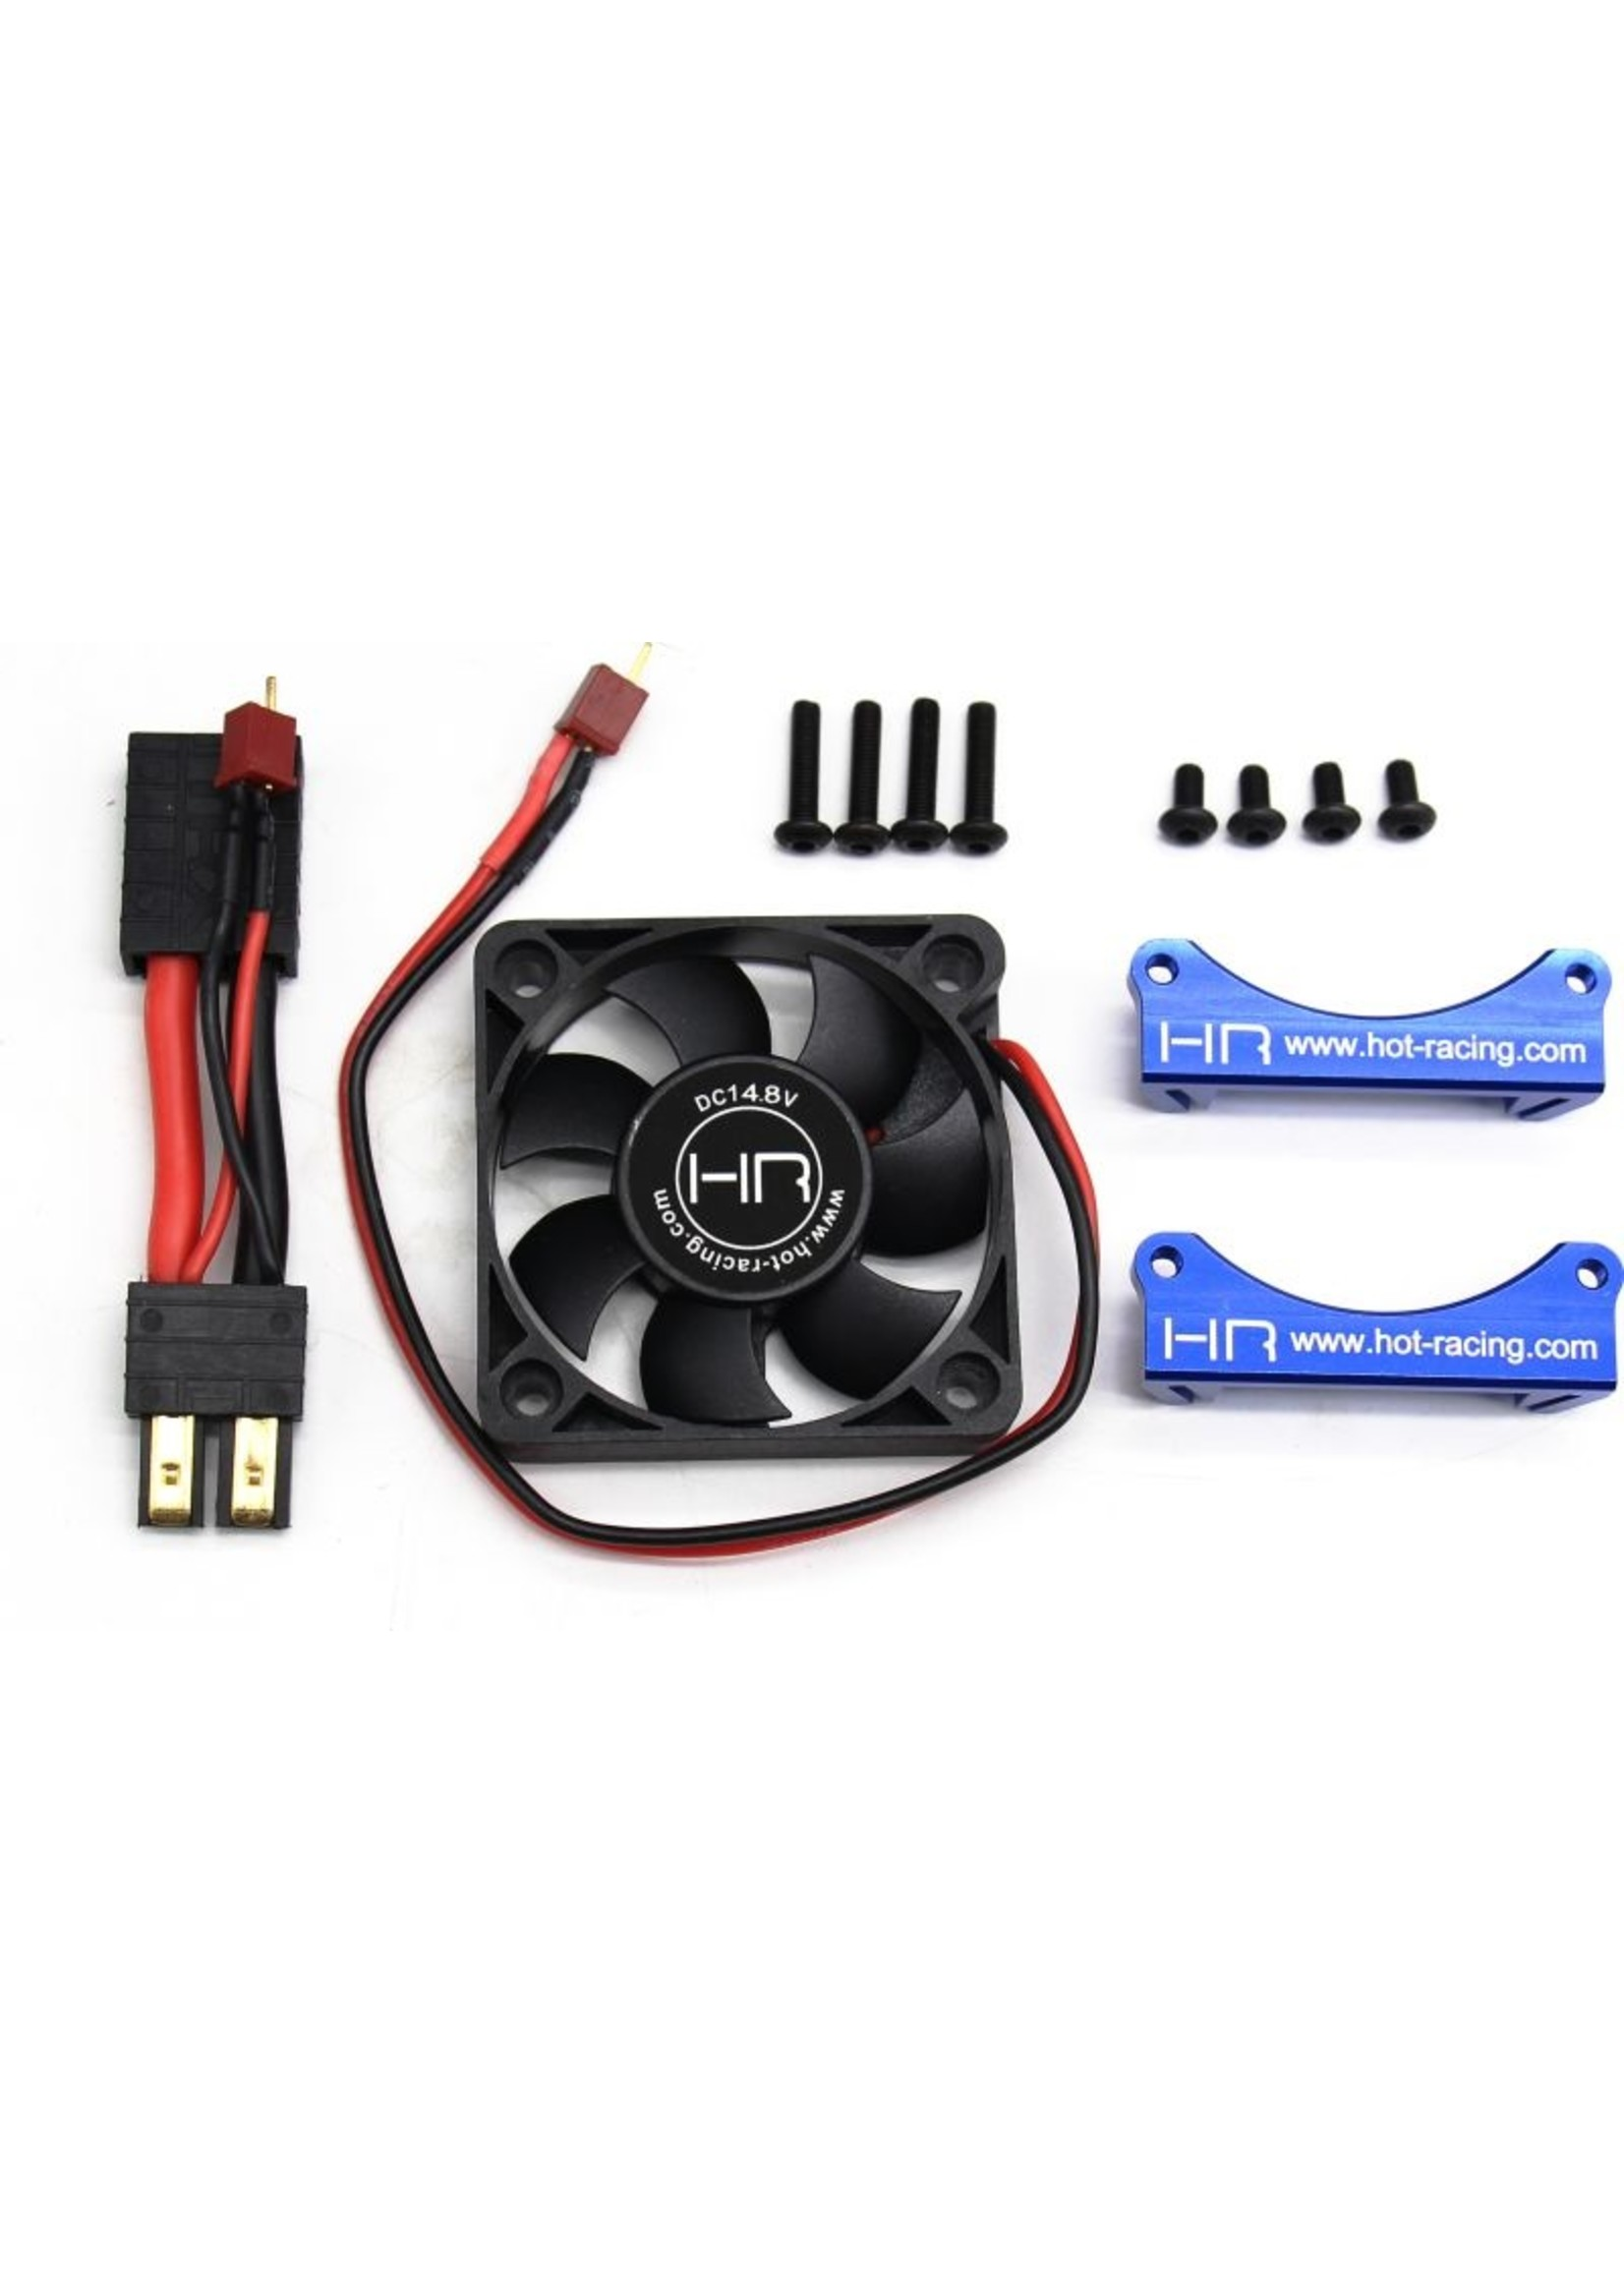 Hot Racing HRAXMX505F08 Hot Racing 50mm Monster Blower Motor Cooling Fan, for Traxxas X Maxx 8S